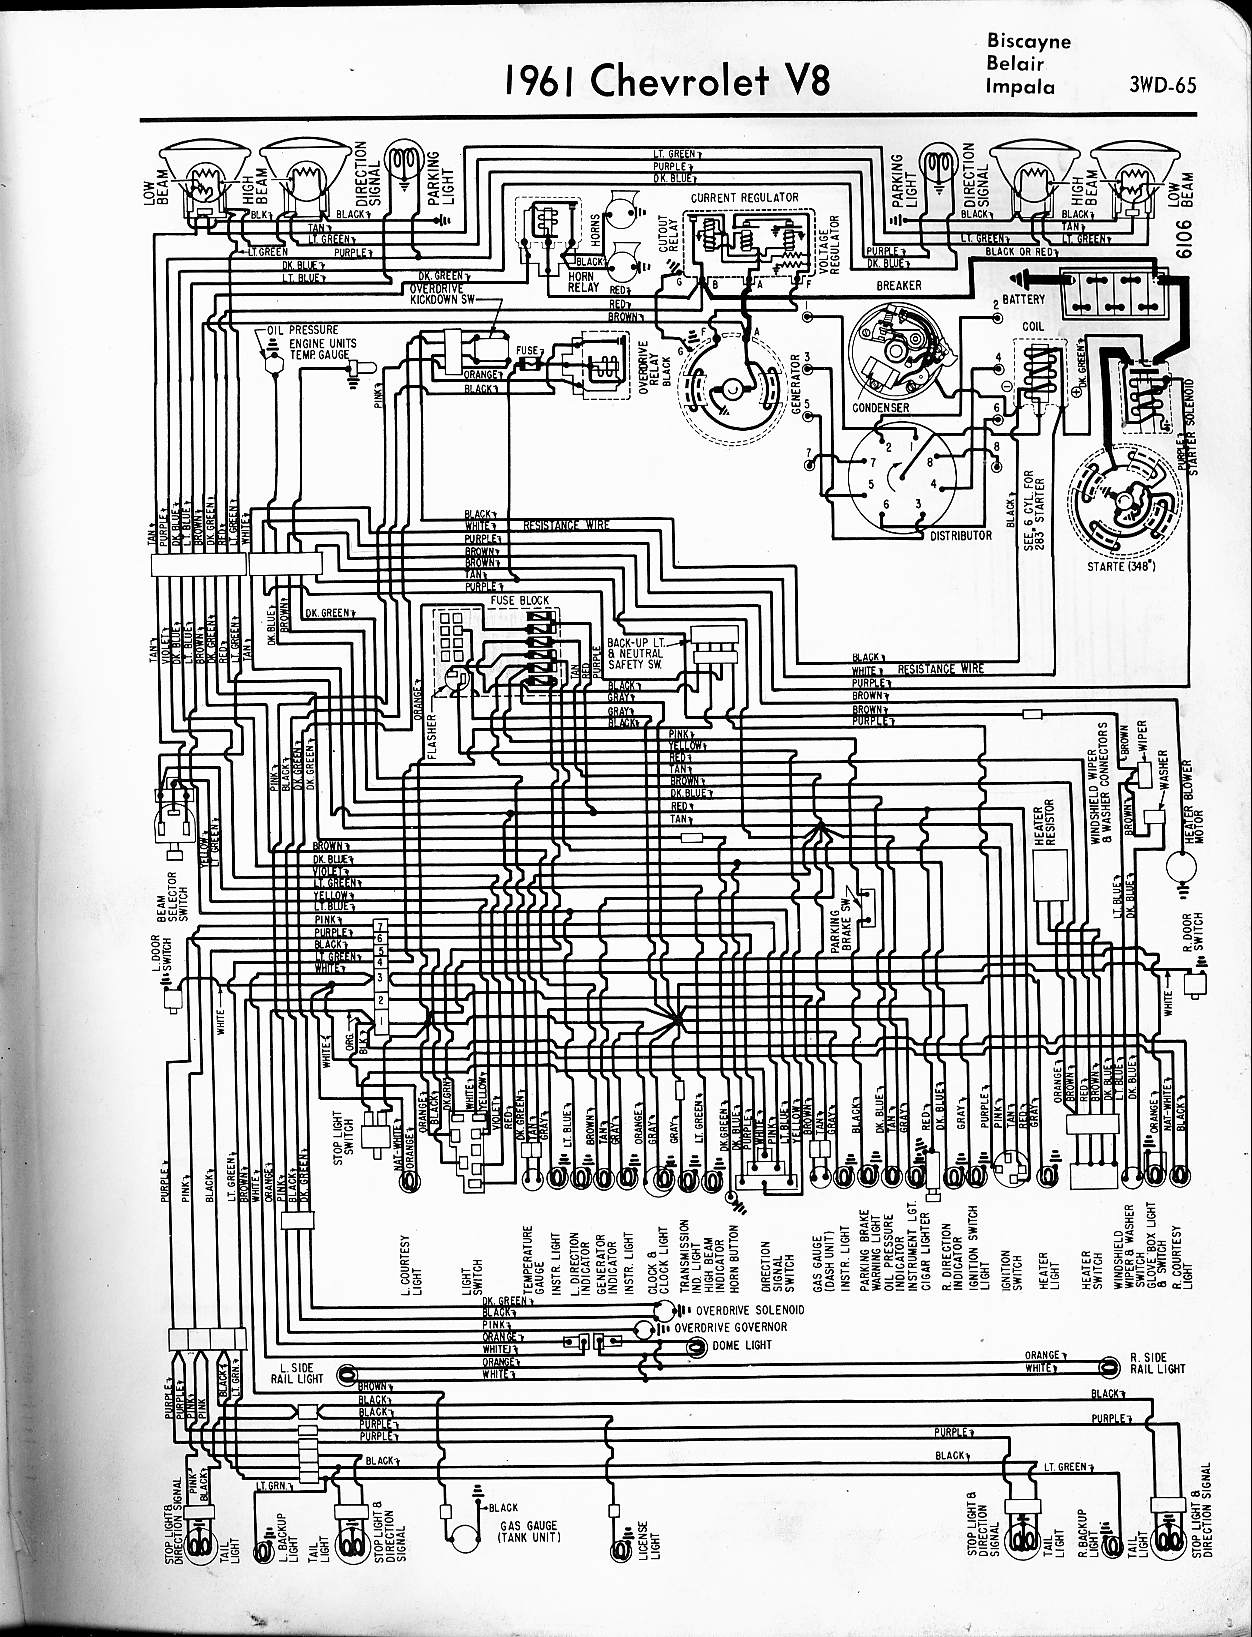 1963 corvette wiring schematic wiring diagram schematics 1973 corvette wiring diagram 57 65 chevy wiring diagrams 1969 plymouth wiring schematic 1963 corvette wiring schematic